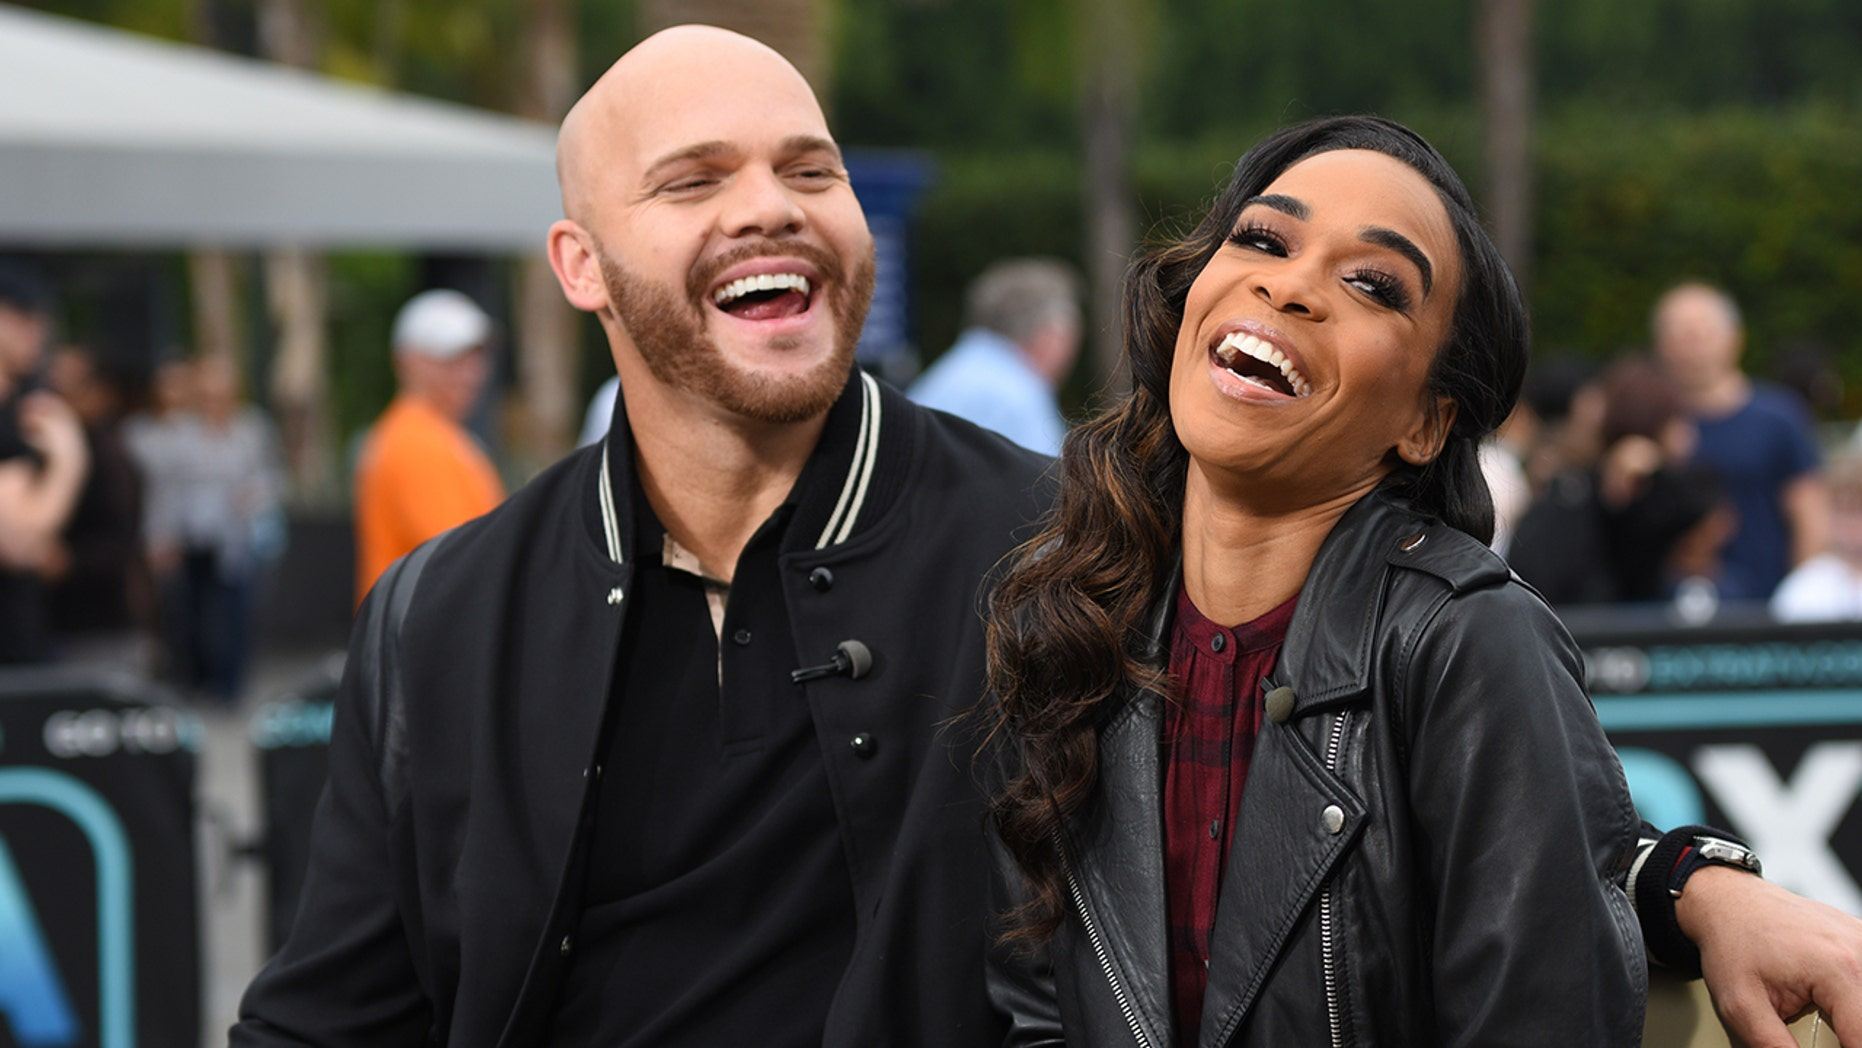 Destiny's Child singer and actress Michelle Williams announced on Friday, Dec. 7, 2018 that her engagement to pastor Chad Johnson is over.